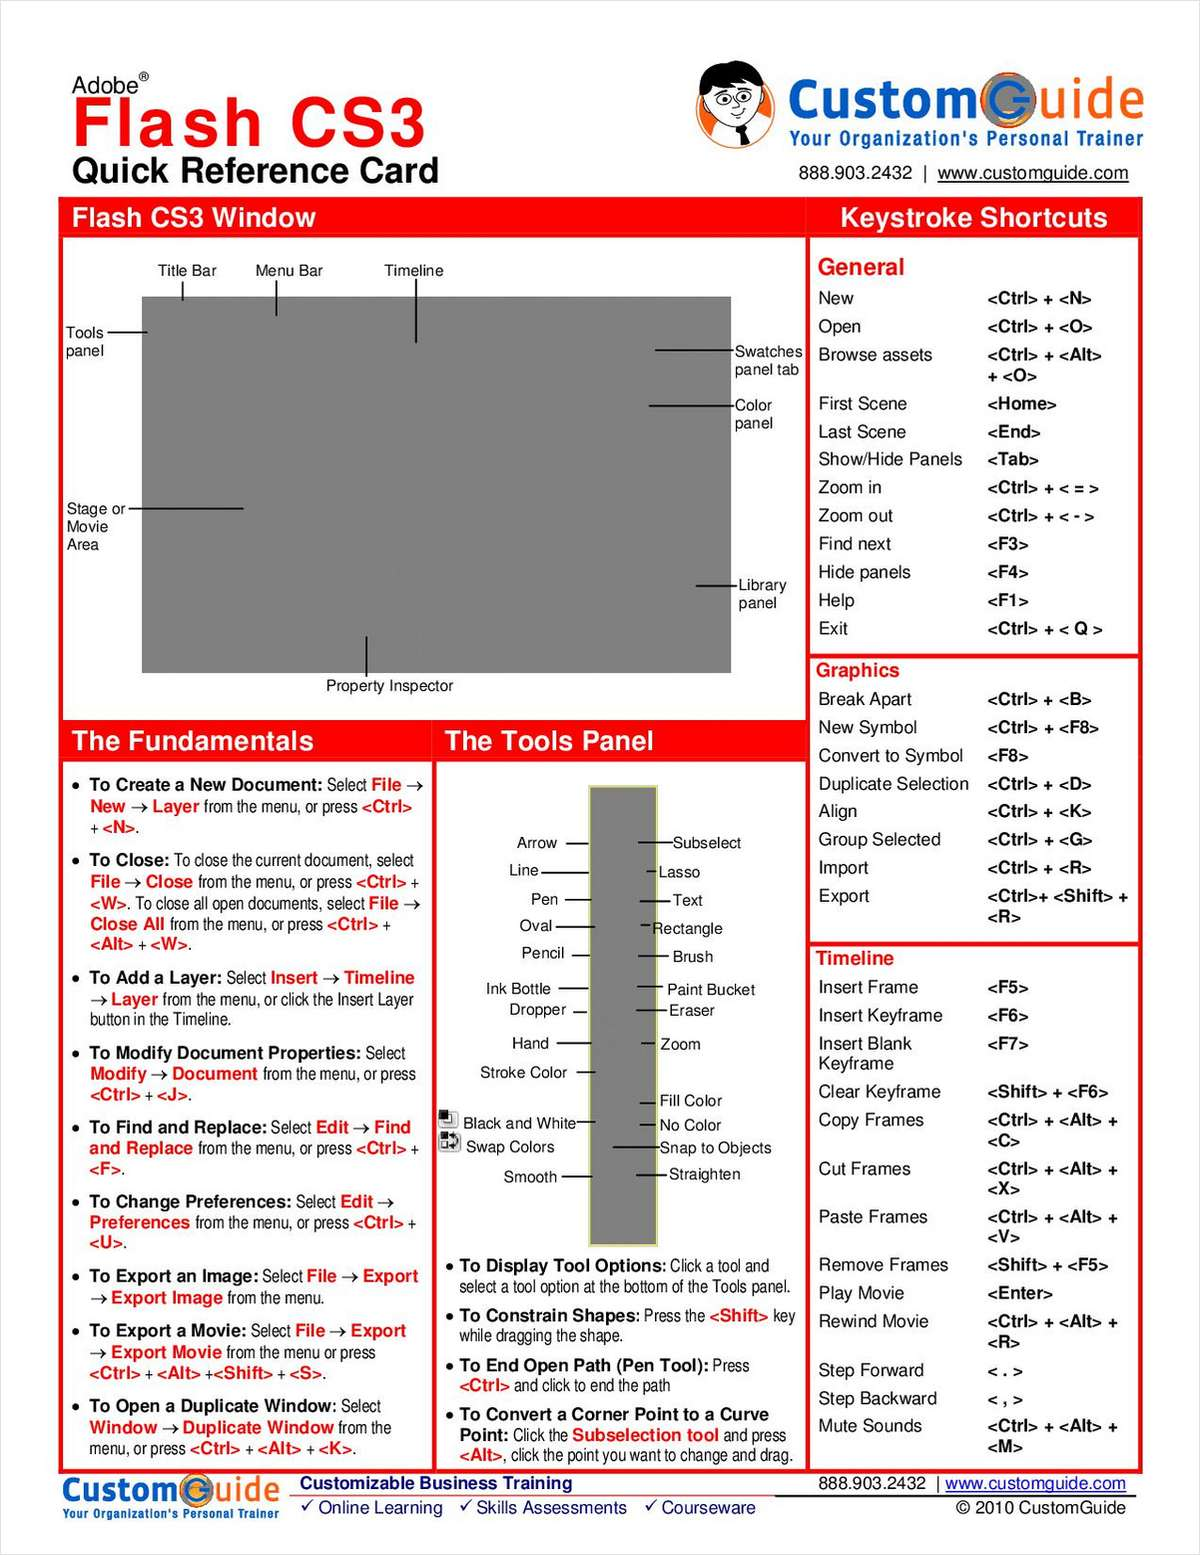 Adobe Flash CS3 -- Free Quick Reference Card